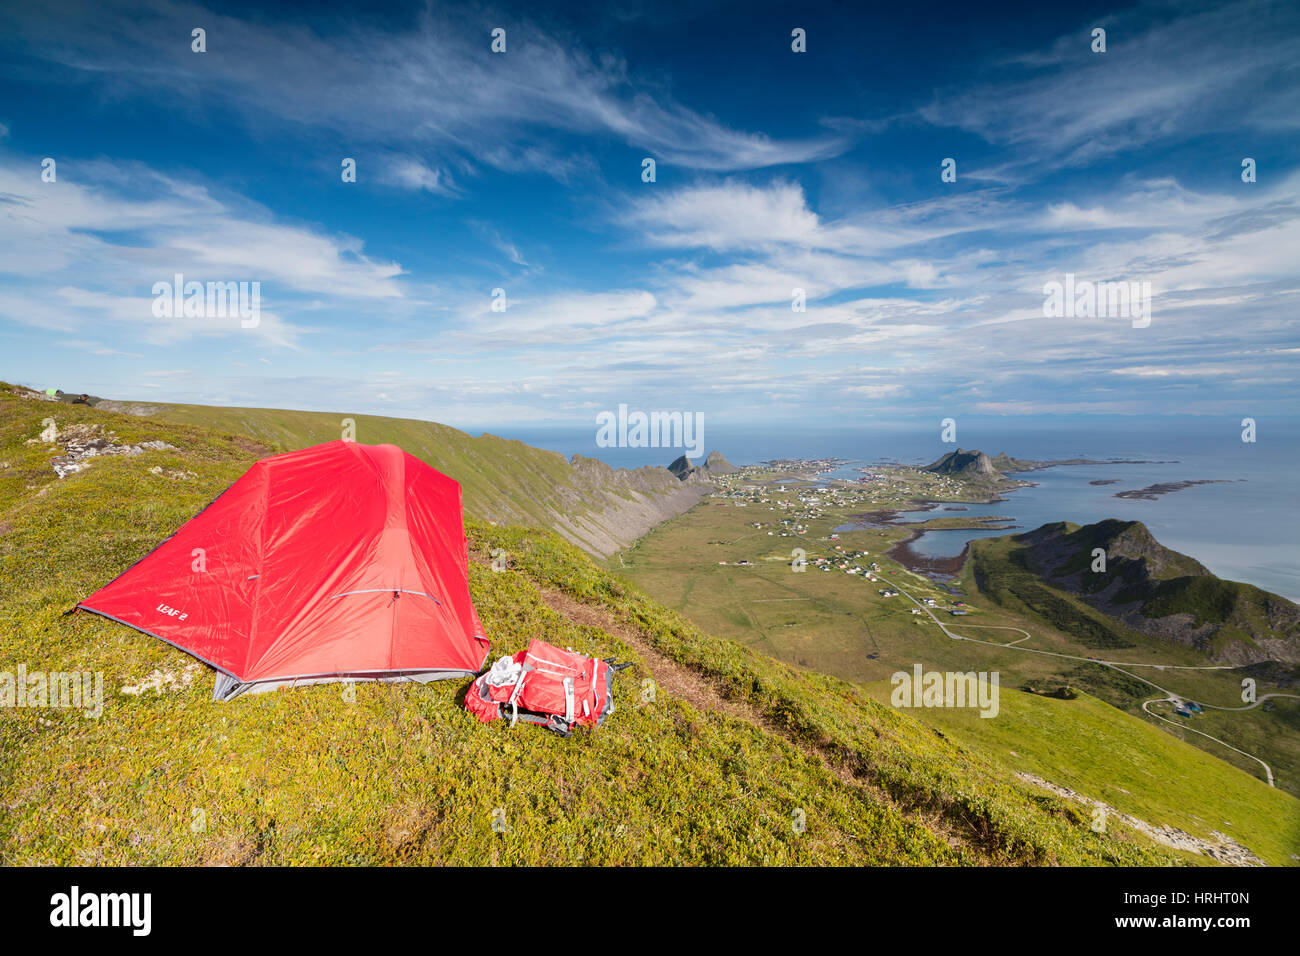 Tent on mountain ridge overlooking meadows and sea, Sorland, Vaeroy Island, Nordland county, Lofoten archipelago, - Stock Image